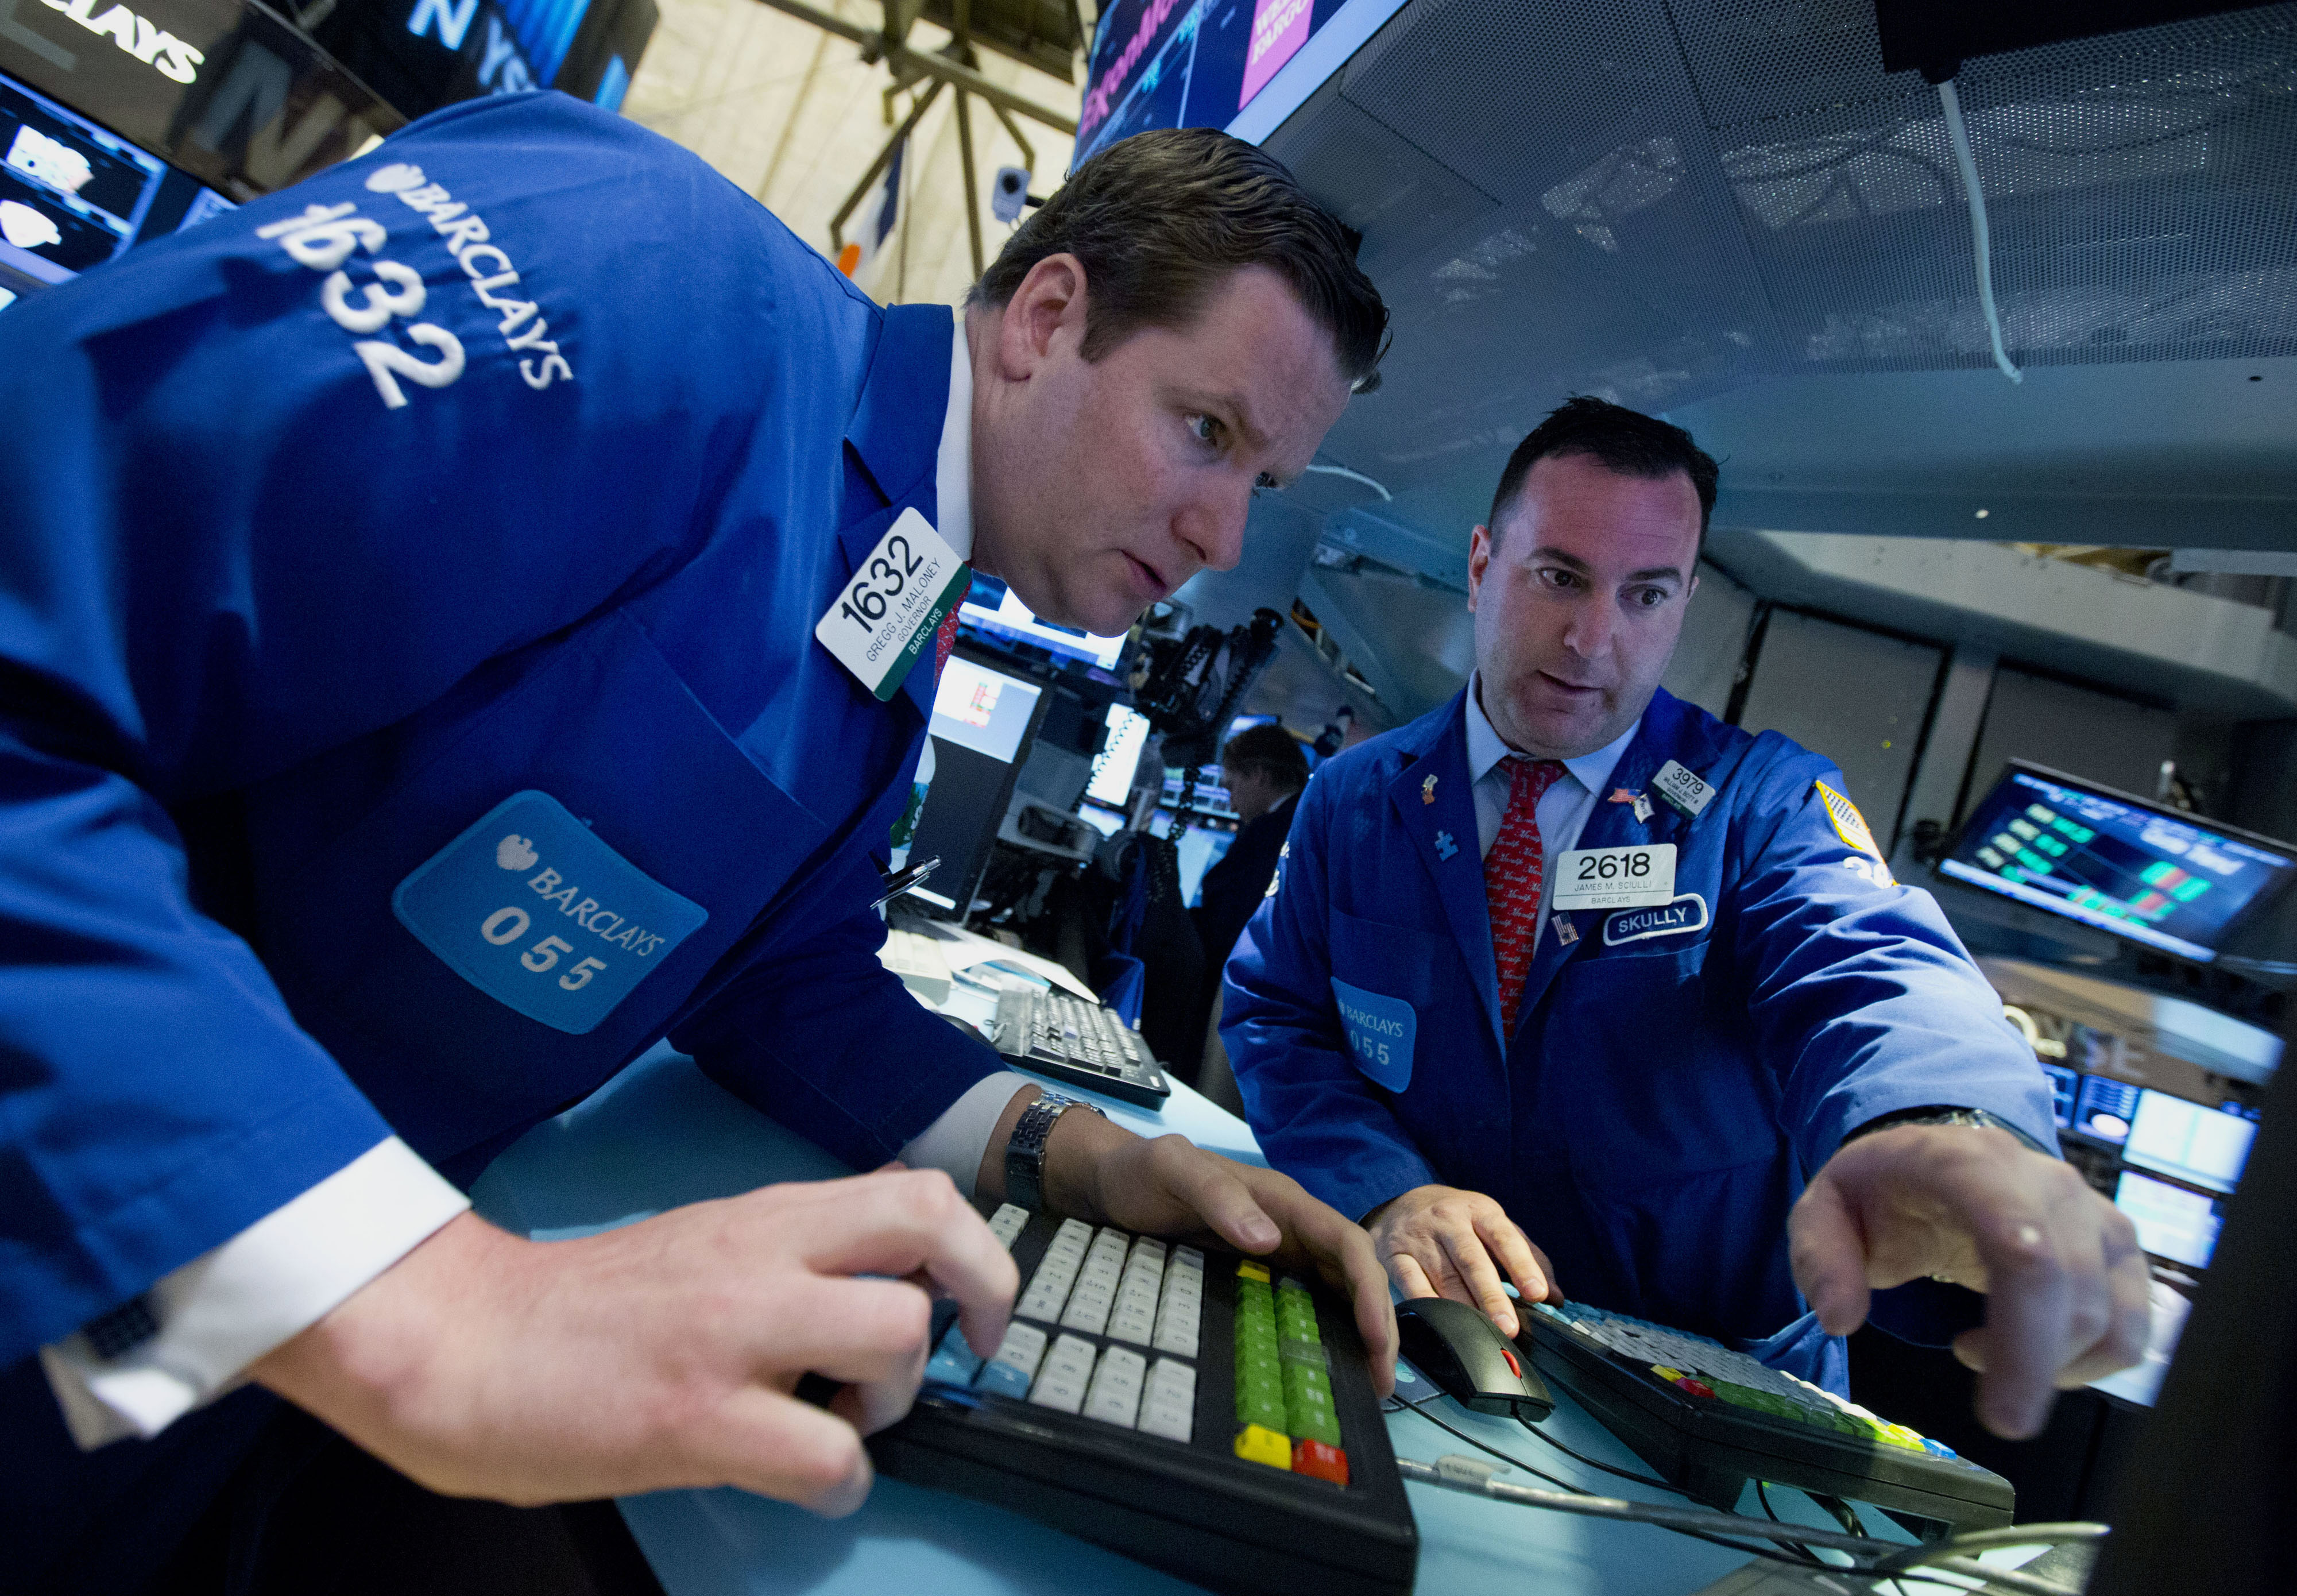 Traders work on the floor of the New York Stock Exchange (NYSE) in New York, U.S., on Monday, June 9, 2014.